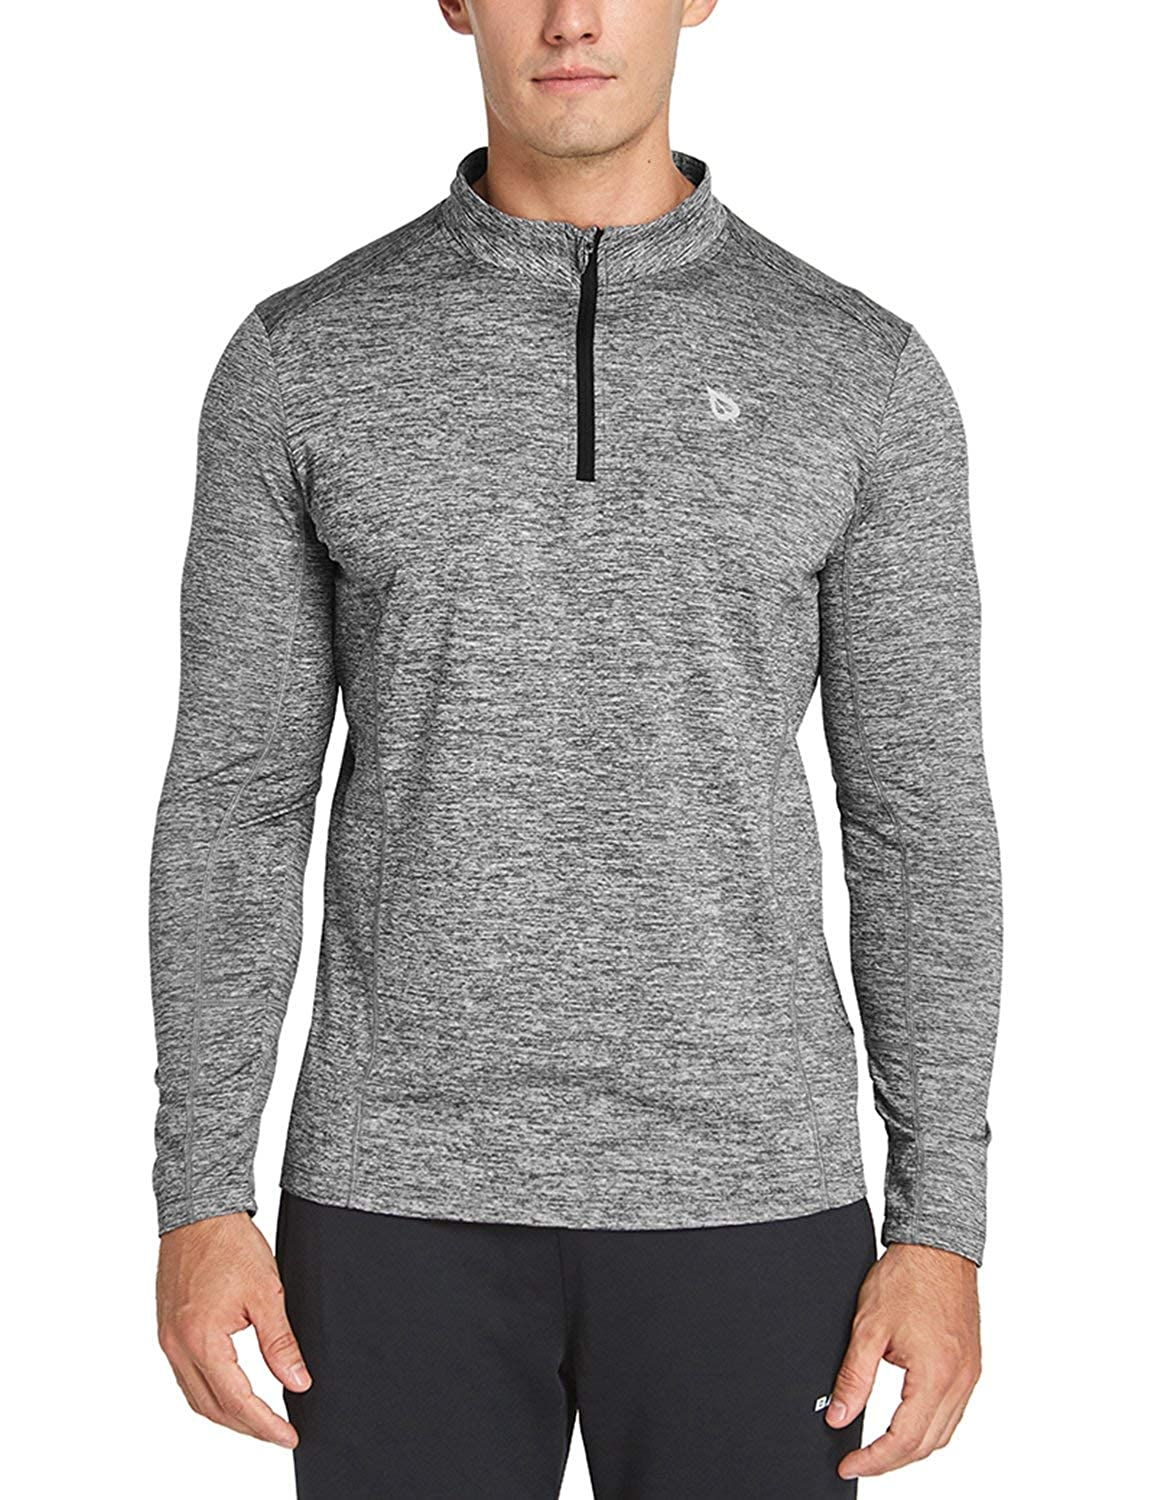 Baleaf Men's 1 4 Zip Pullover Thermal Running T Shirts Long Sleeve